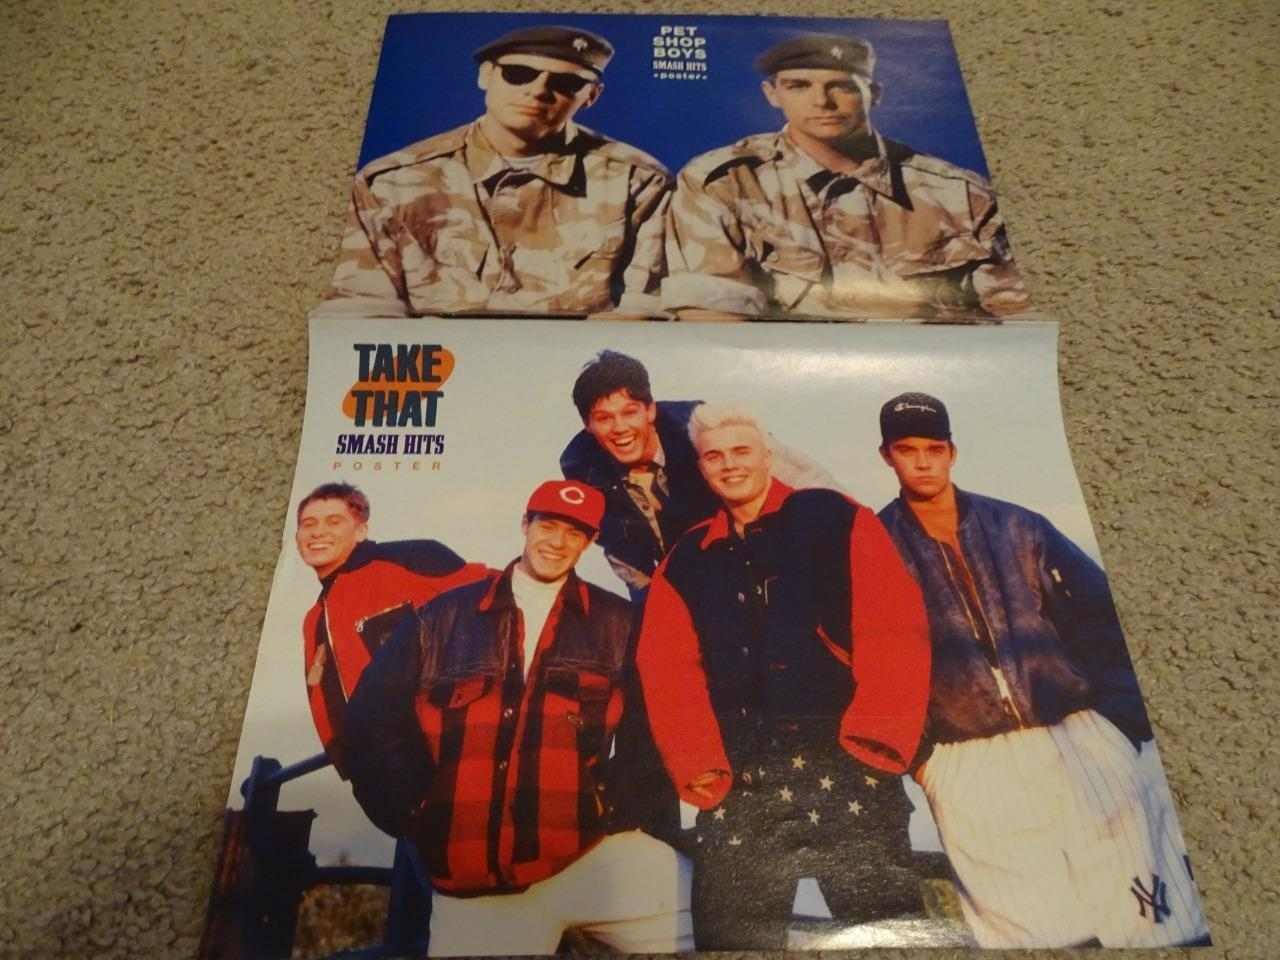 Salt N' Pepper Take That Pet Shop Boys teen magazine poster clipping Tiger Beat